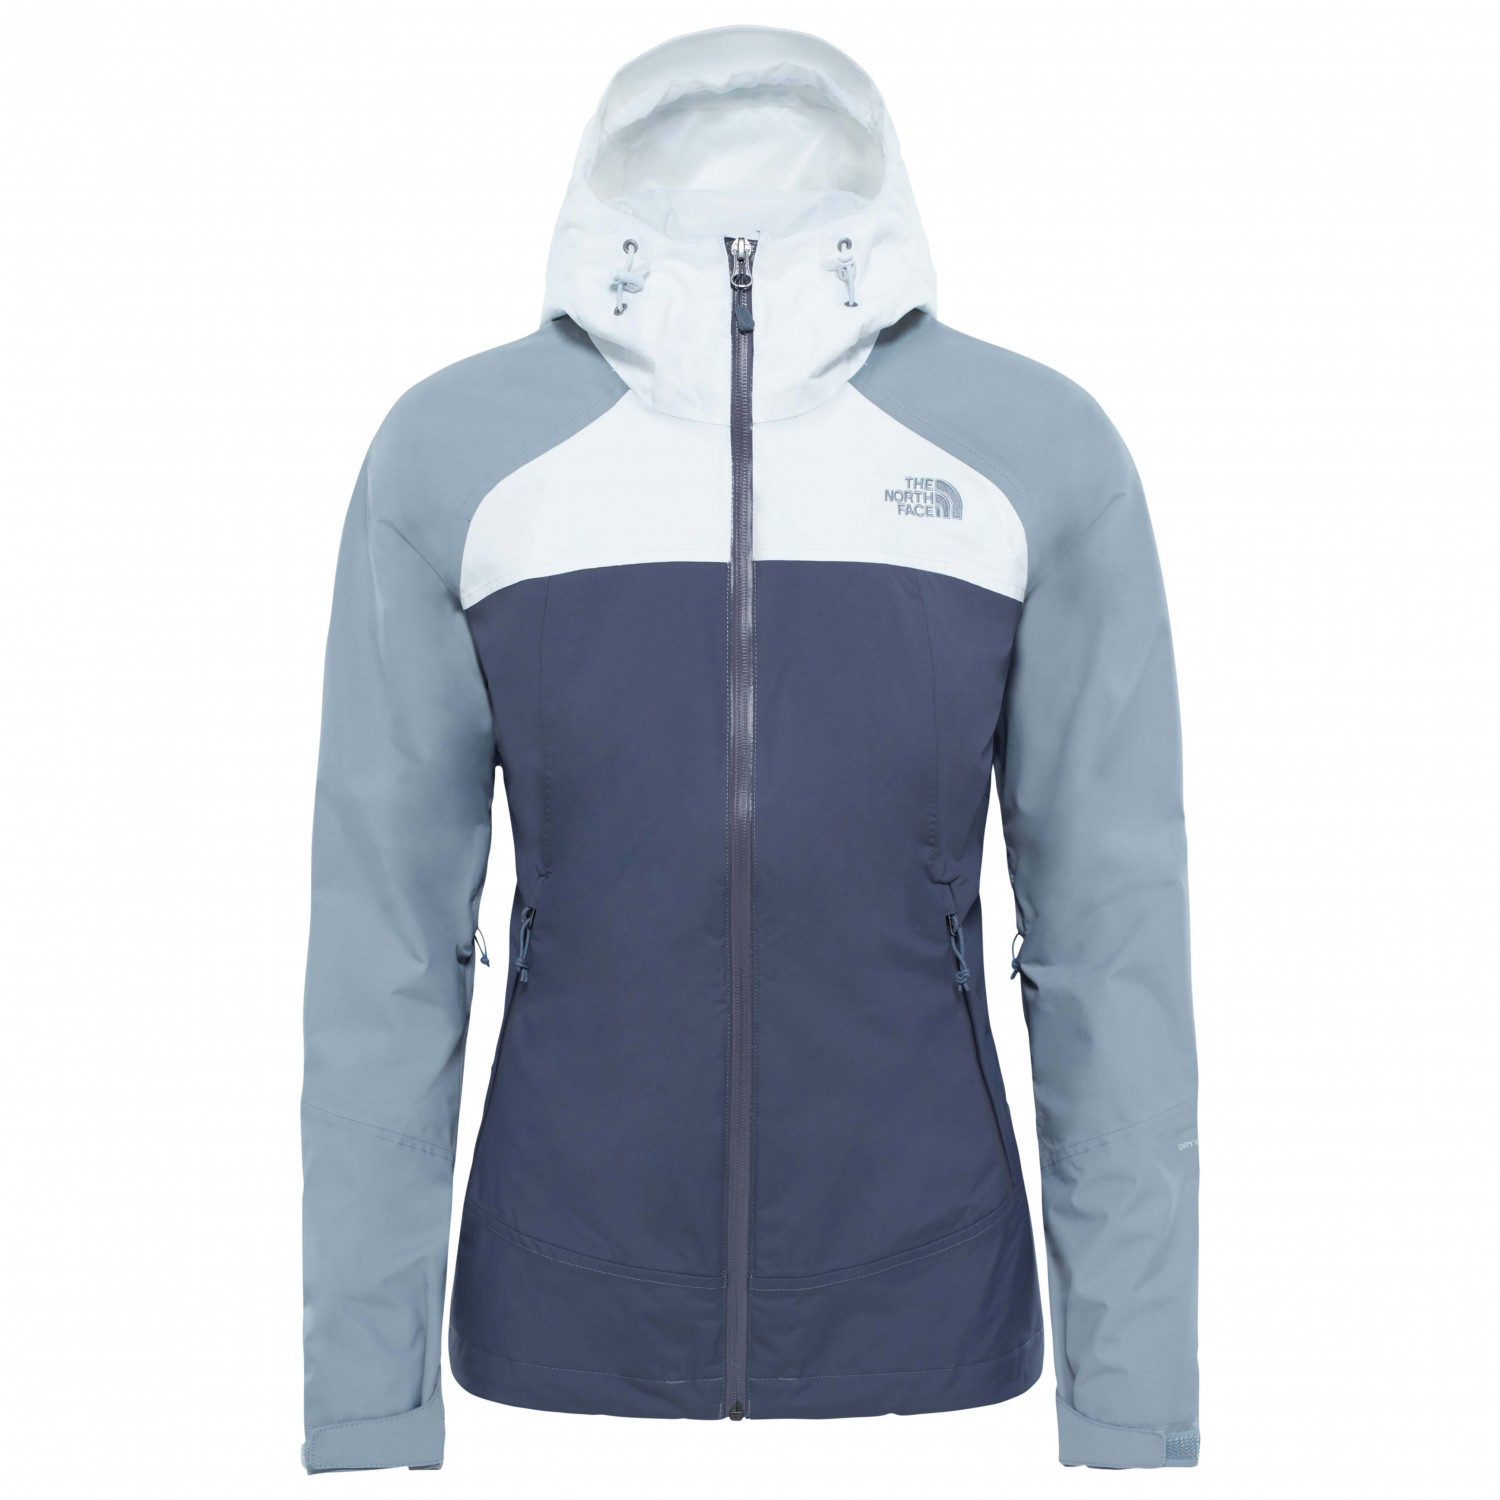 7a00c0995fa The North Face Stratos Jacket - Waterproof jacket Women s